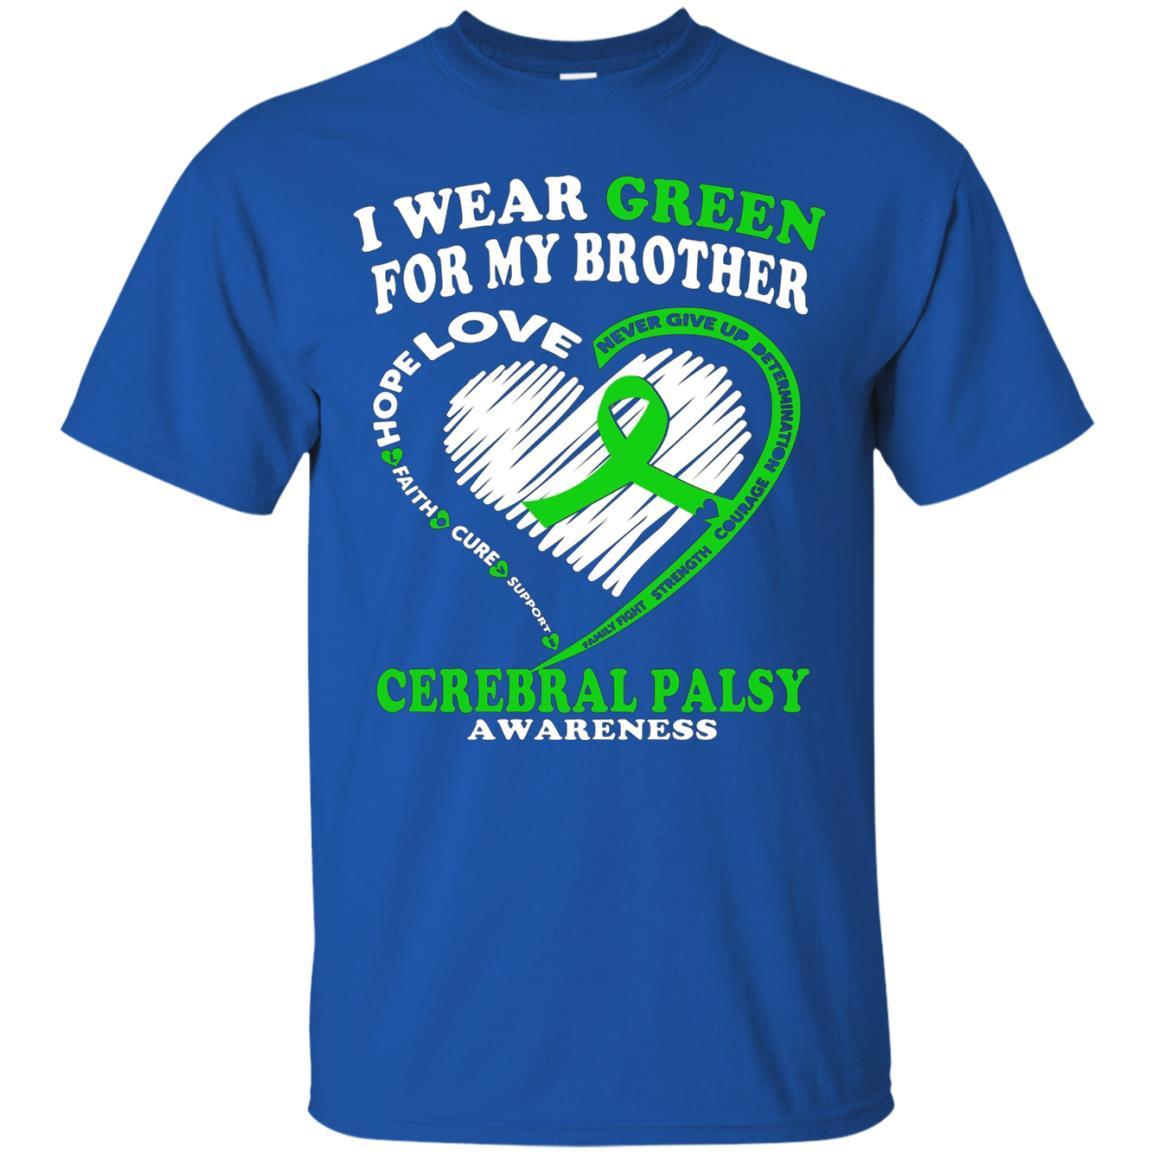 Cerebral Palsy Shirt - I Wear Green For My Brother